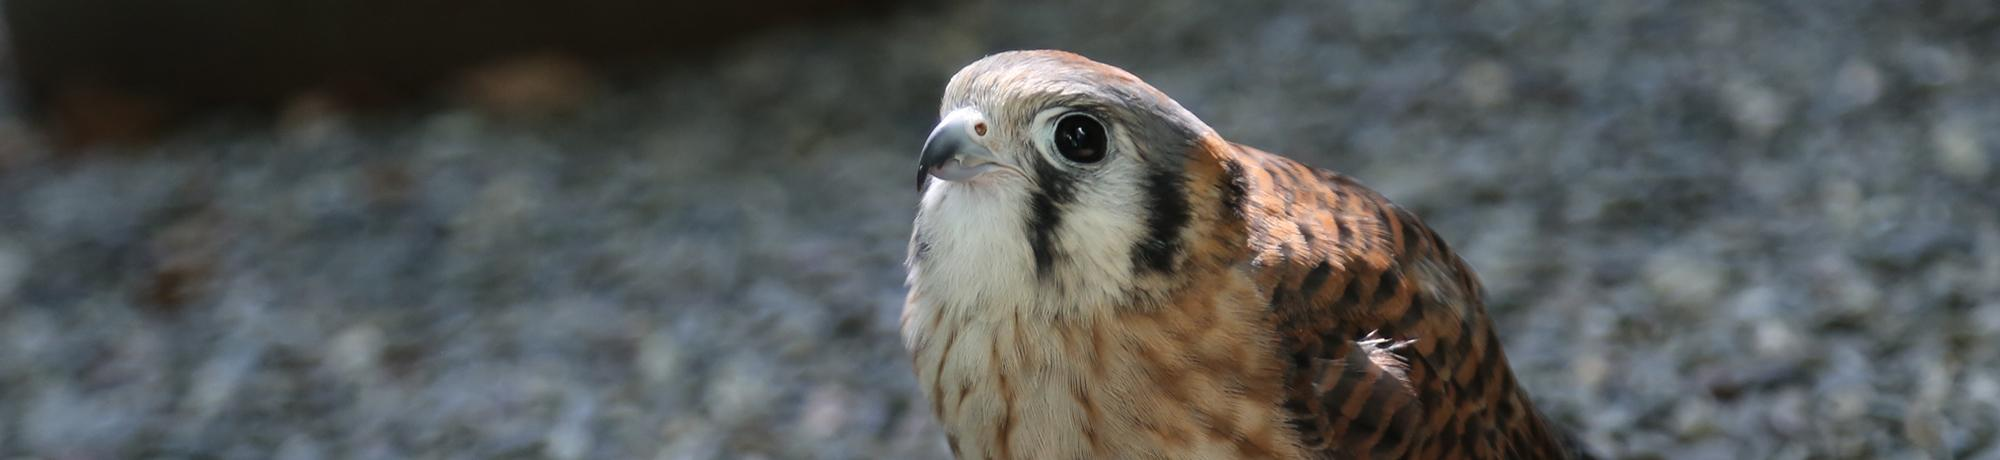 Kalli is an American kestrel